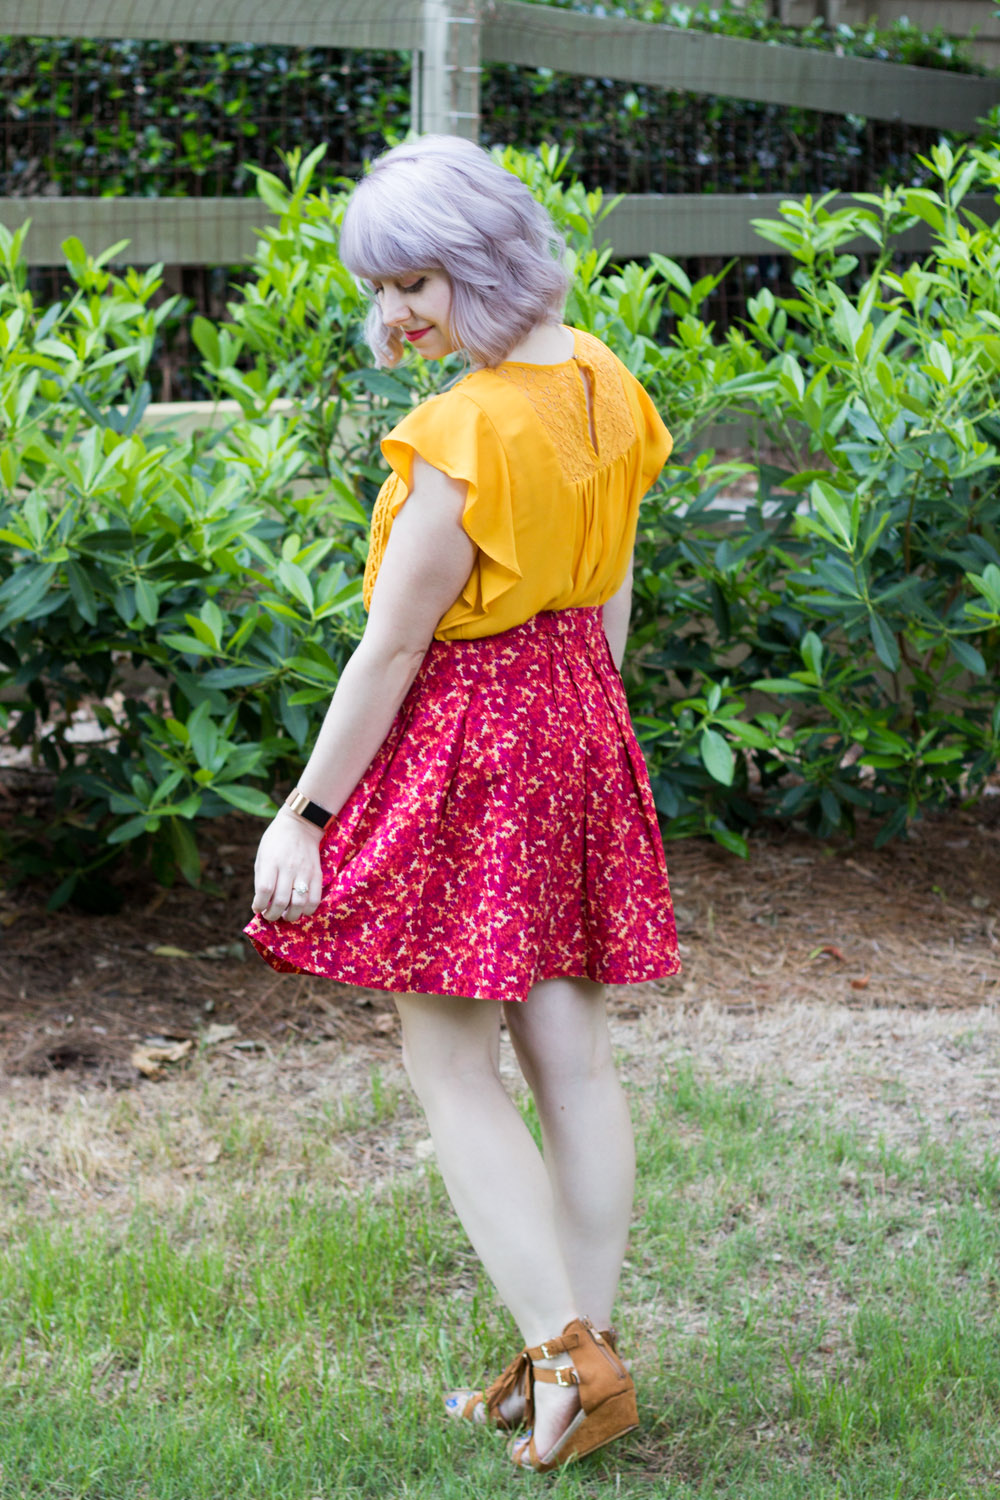 Orange Red Floral Skirt with Brown Wedge Sandals, a Yellow Shirt and Silvery Hair